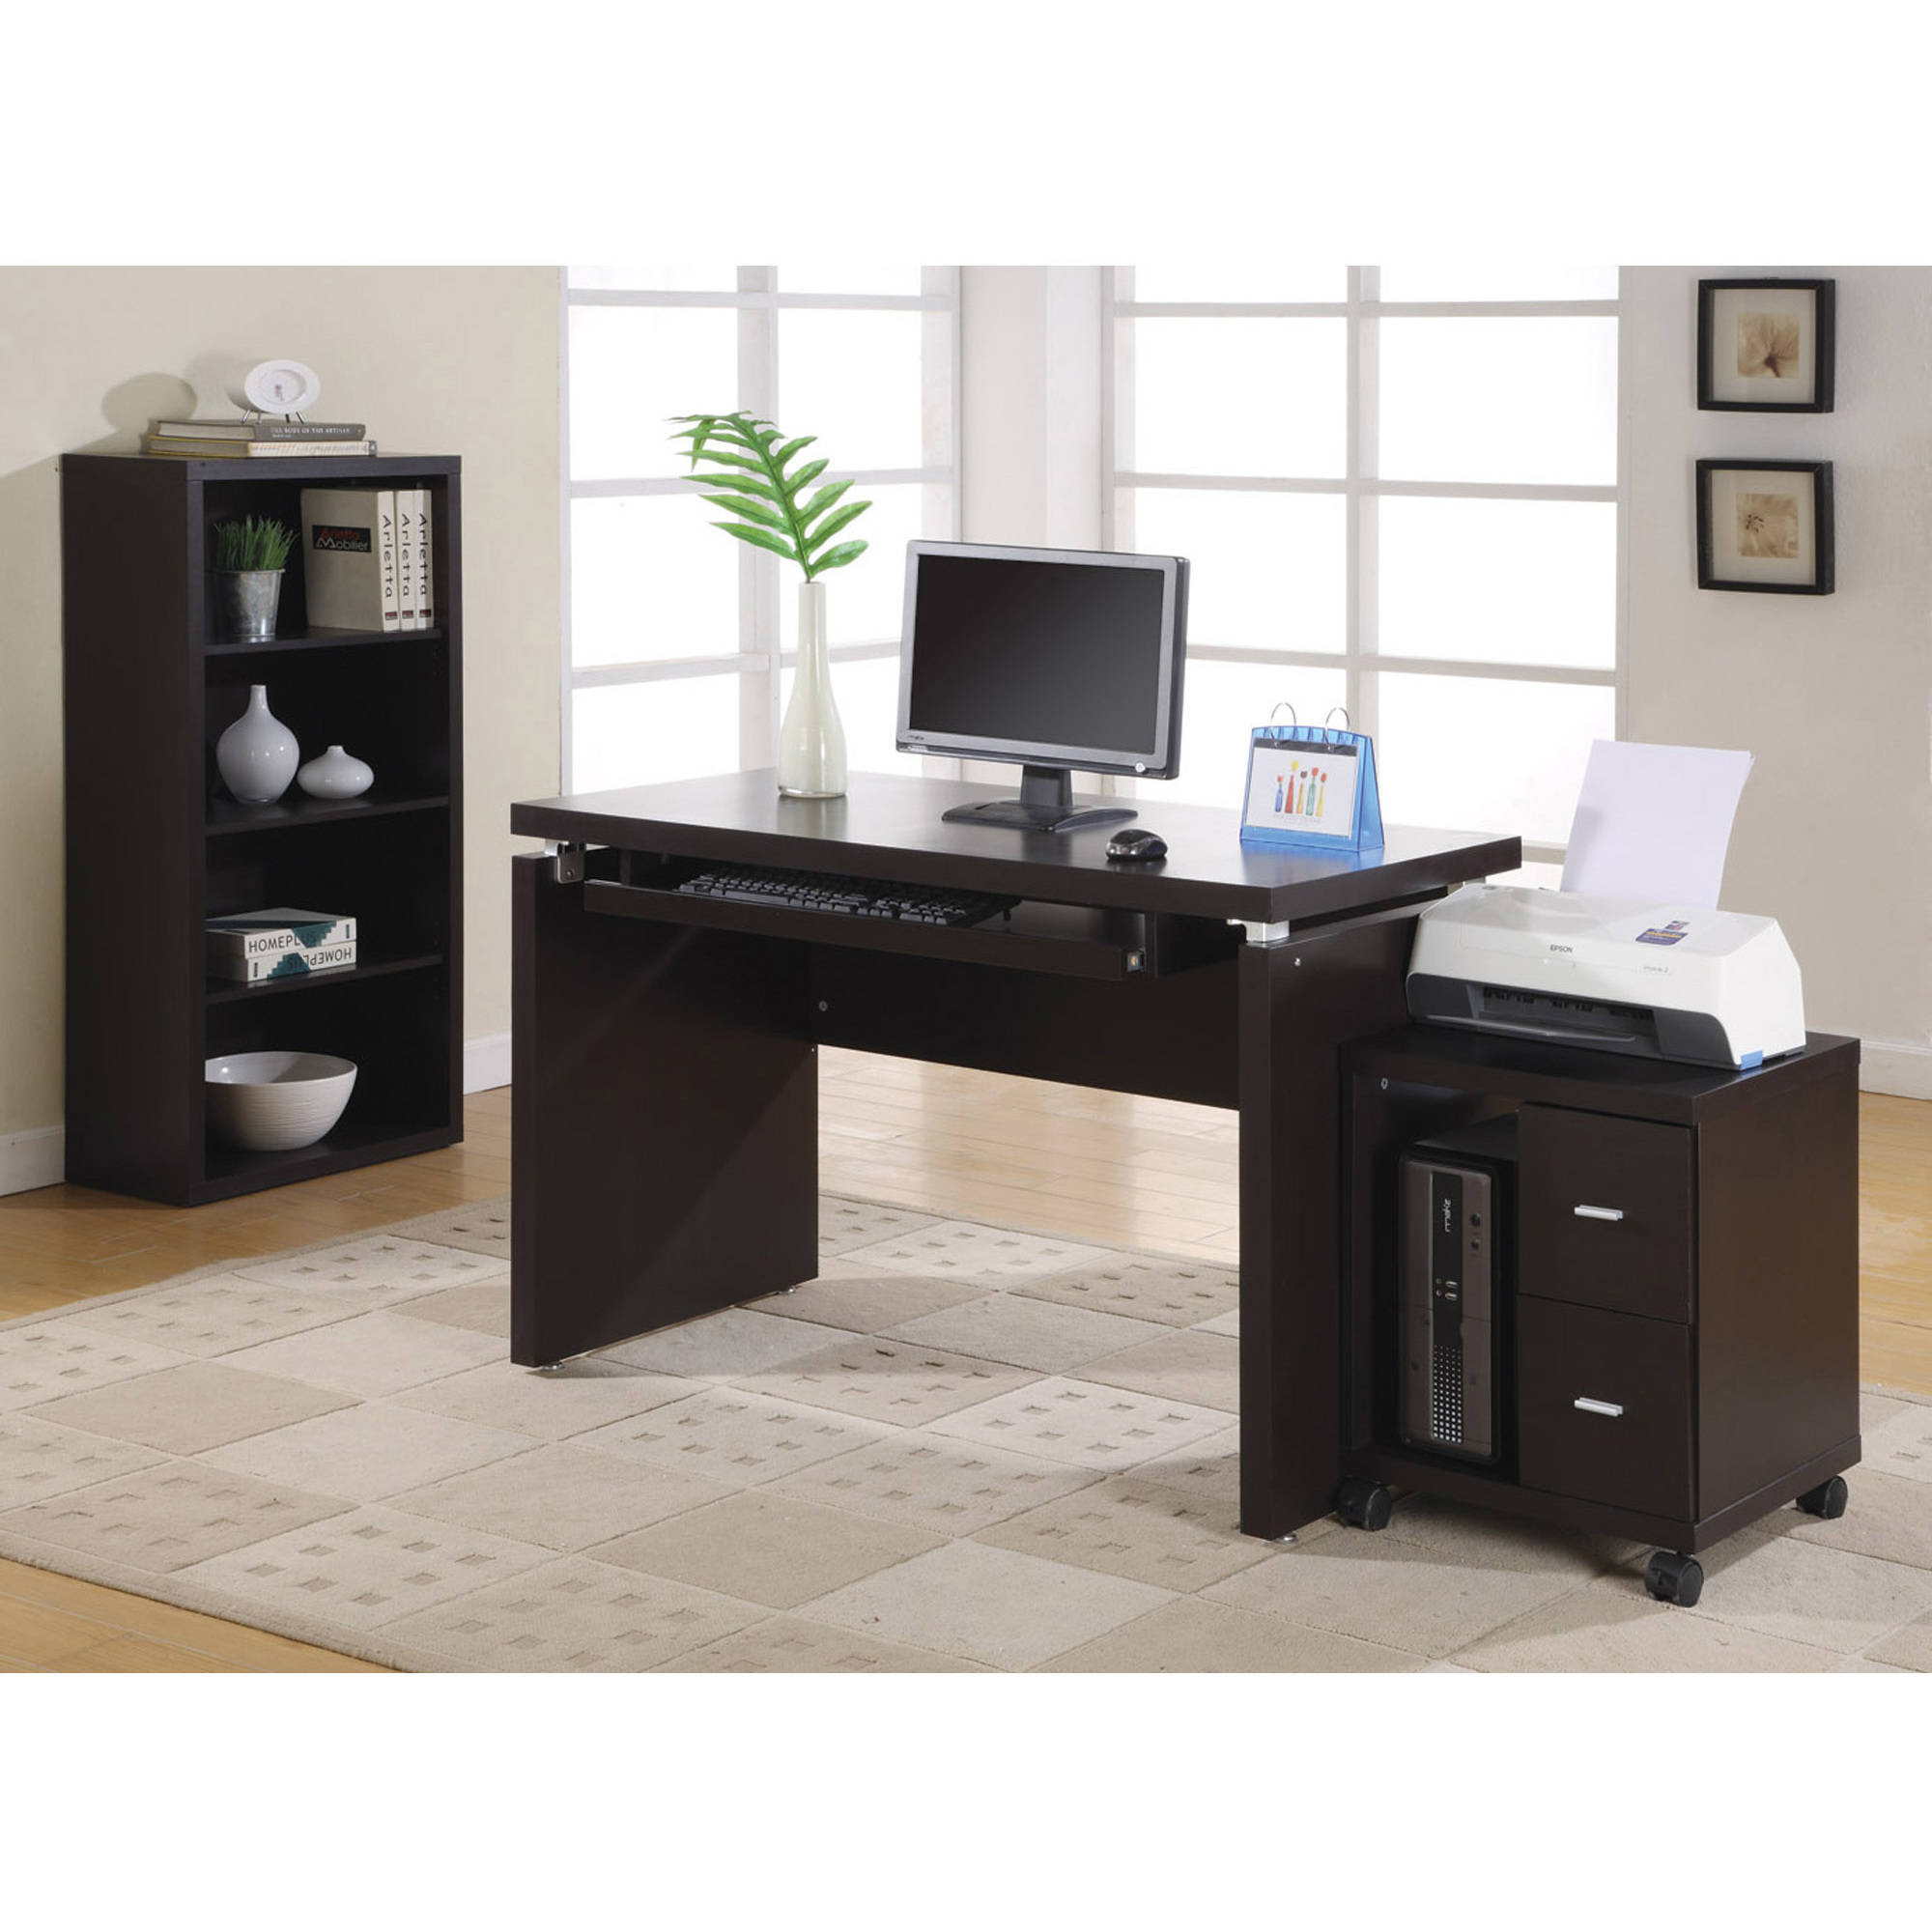 Monarch Cappuccino 48 In. Computer Desk   Walmart.com